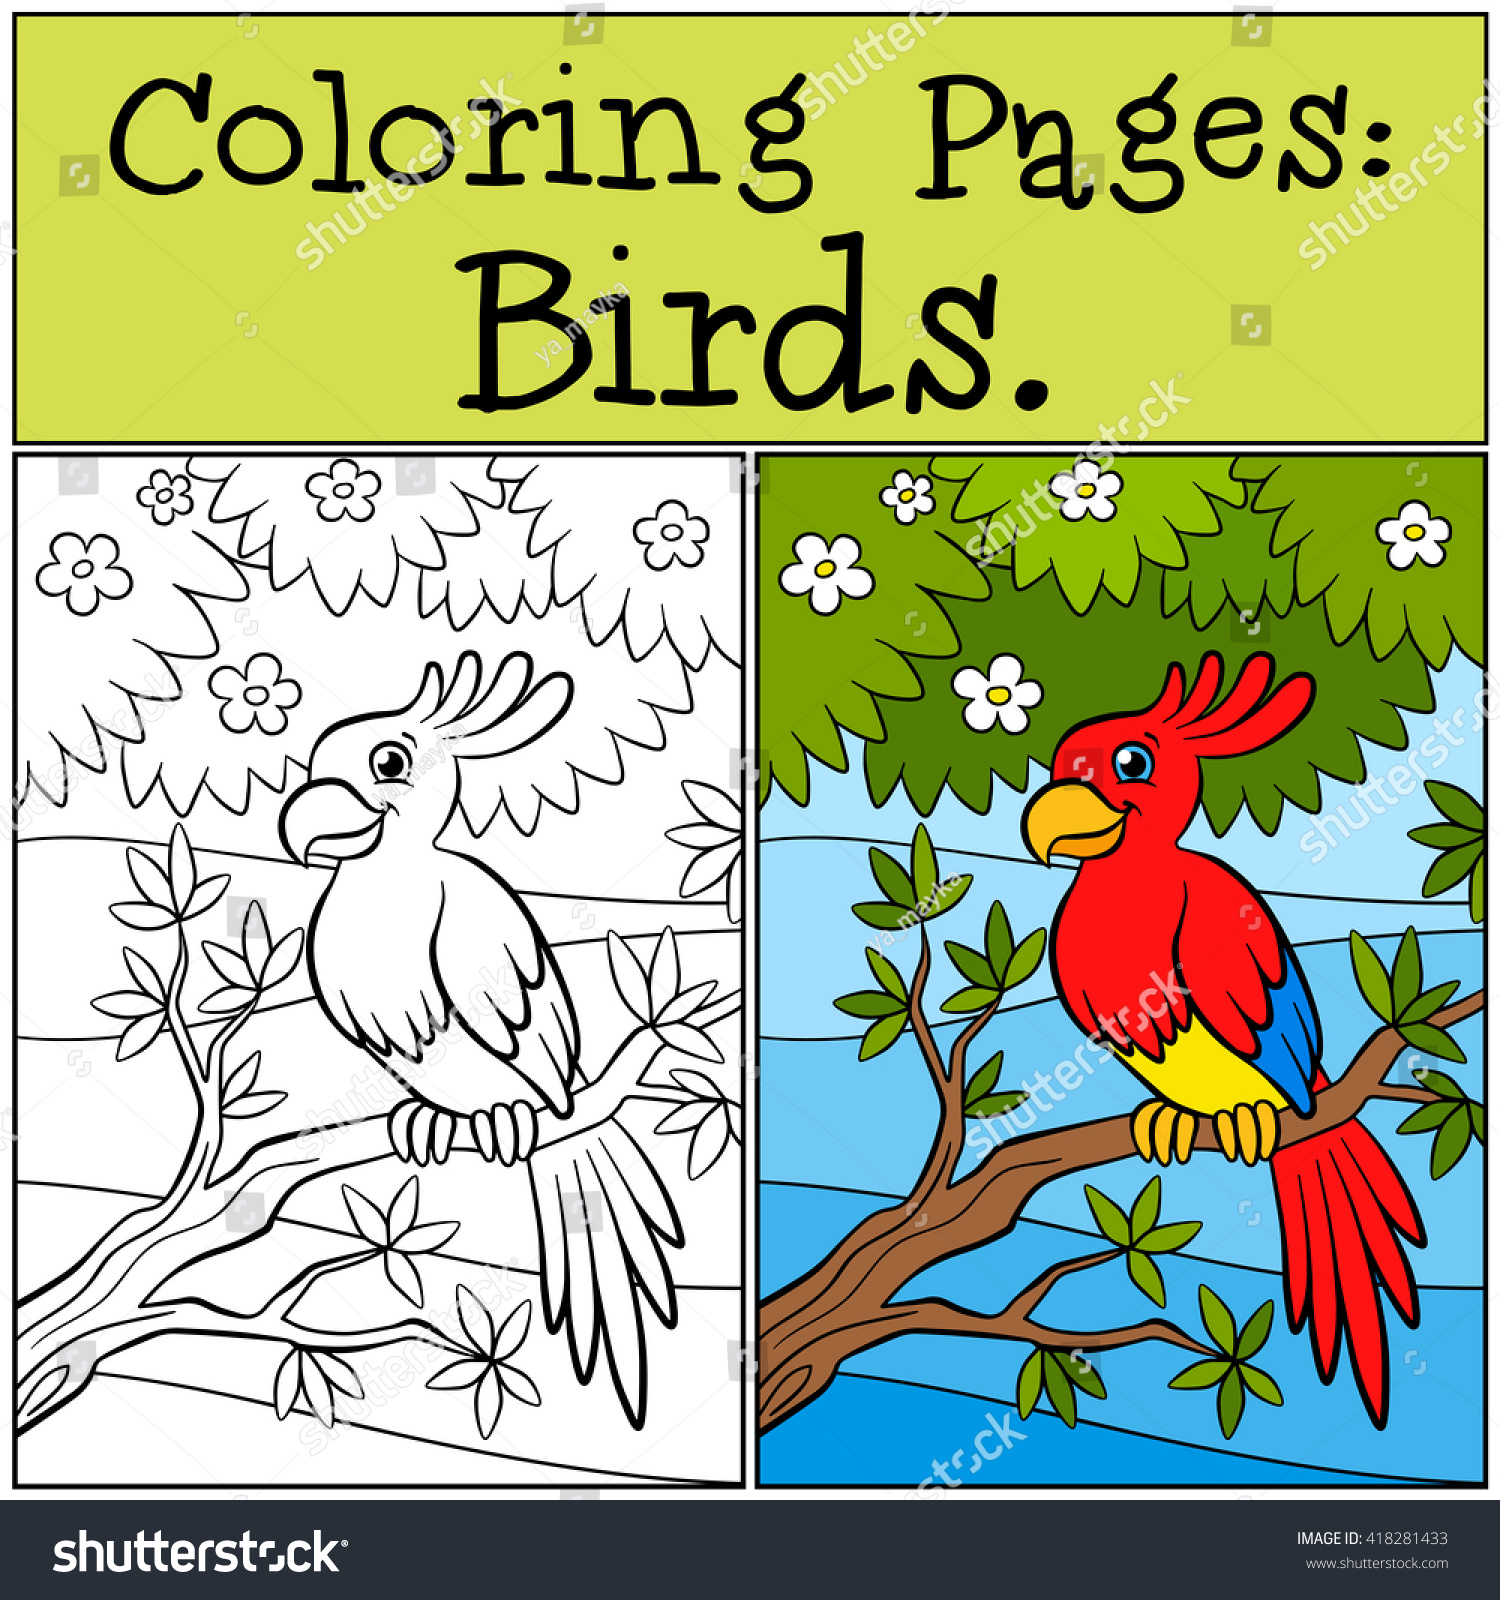 Coloring Pages Birds Little Cute Parrot Stock Vector 418281433 ...